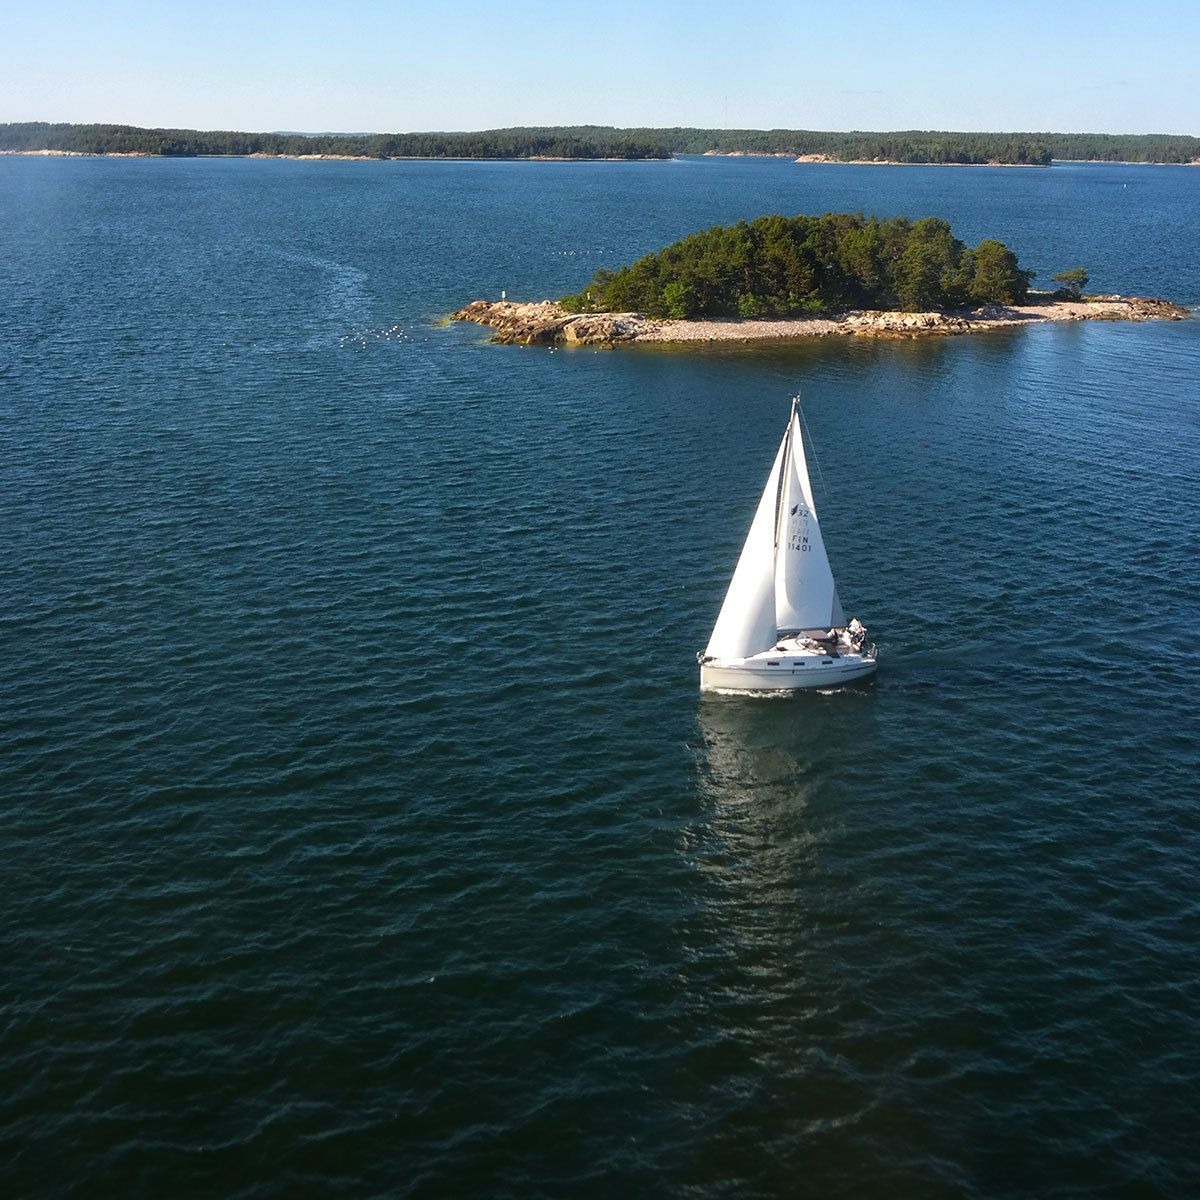 sailing-in-turku-archipelago-in-finland